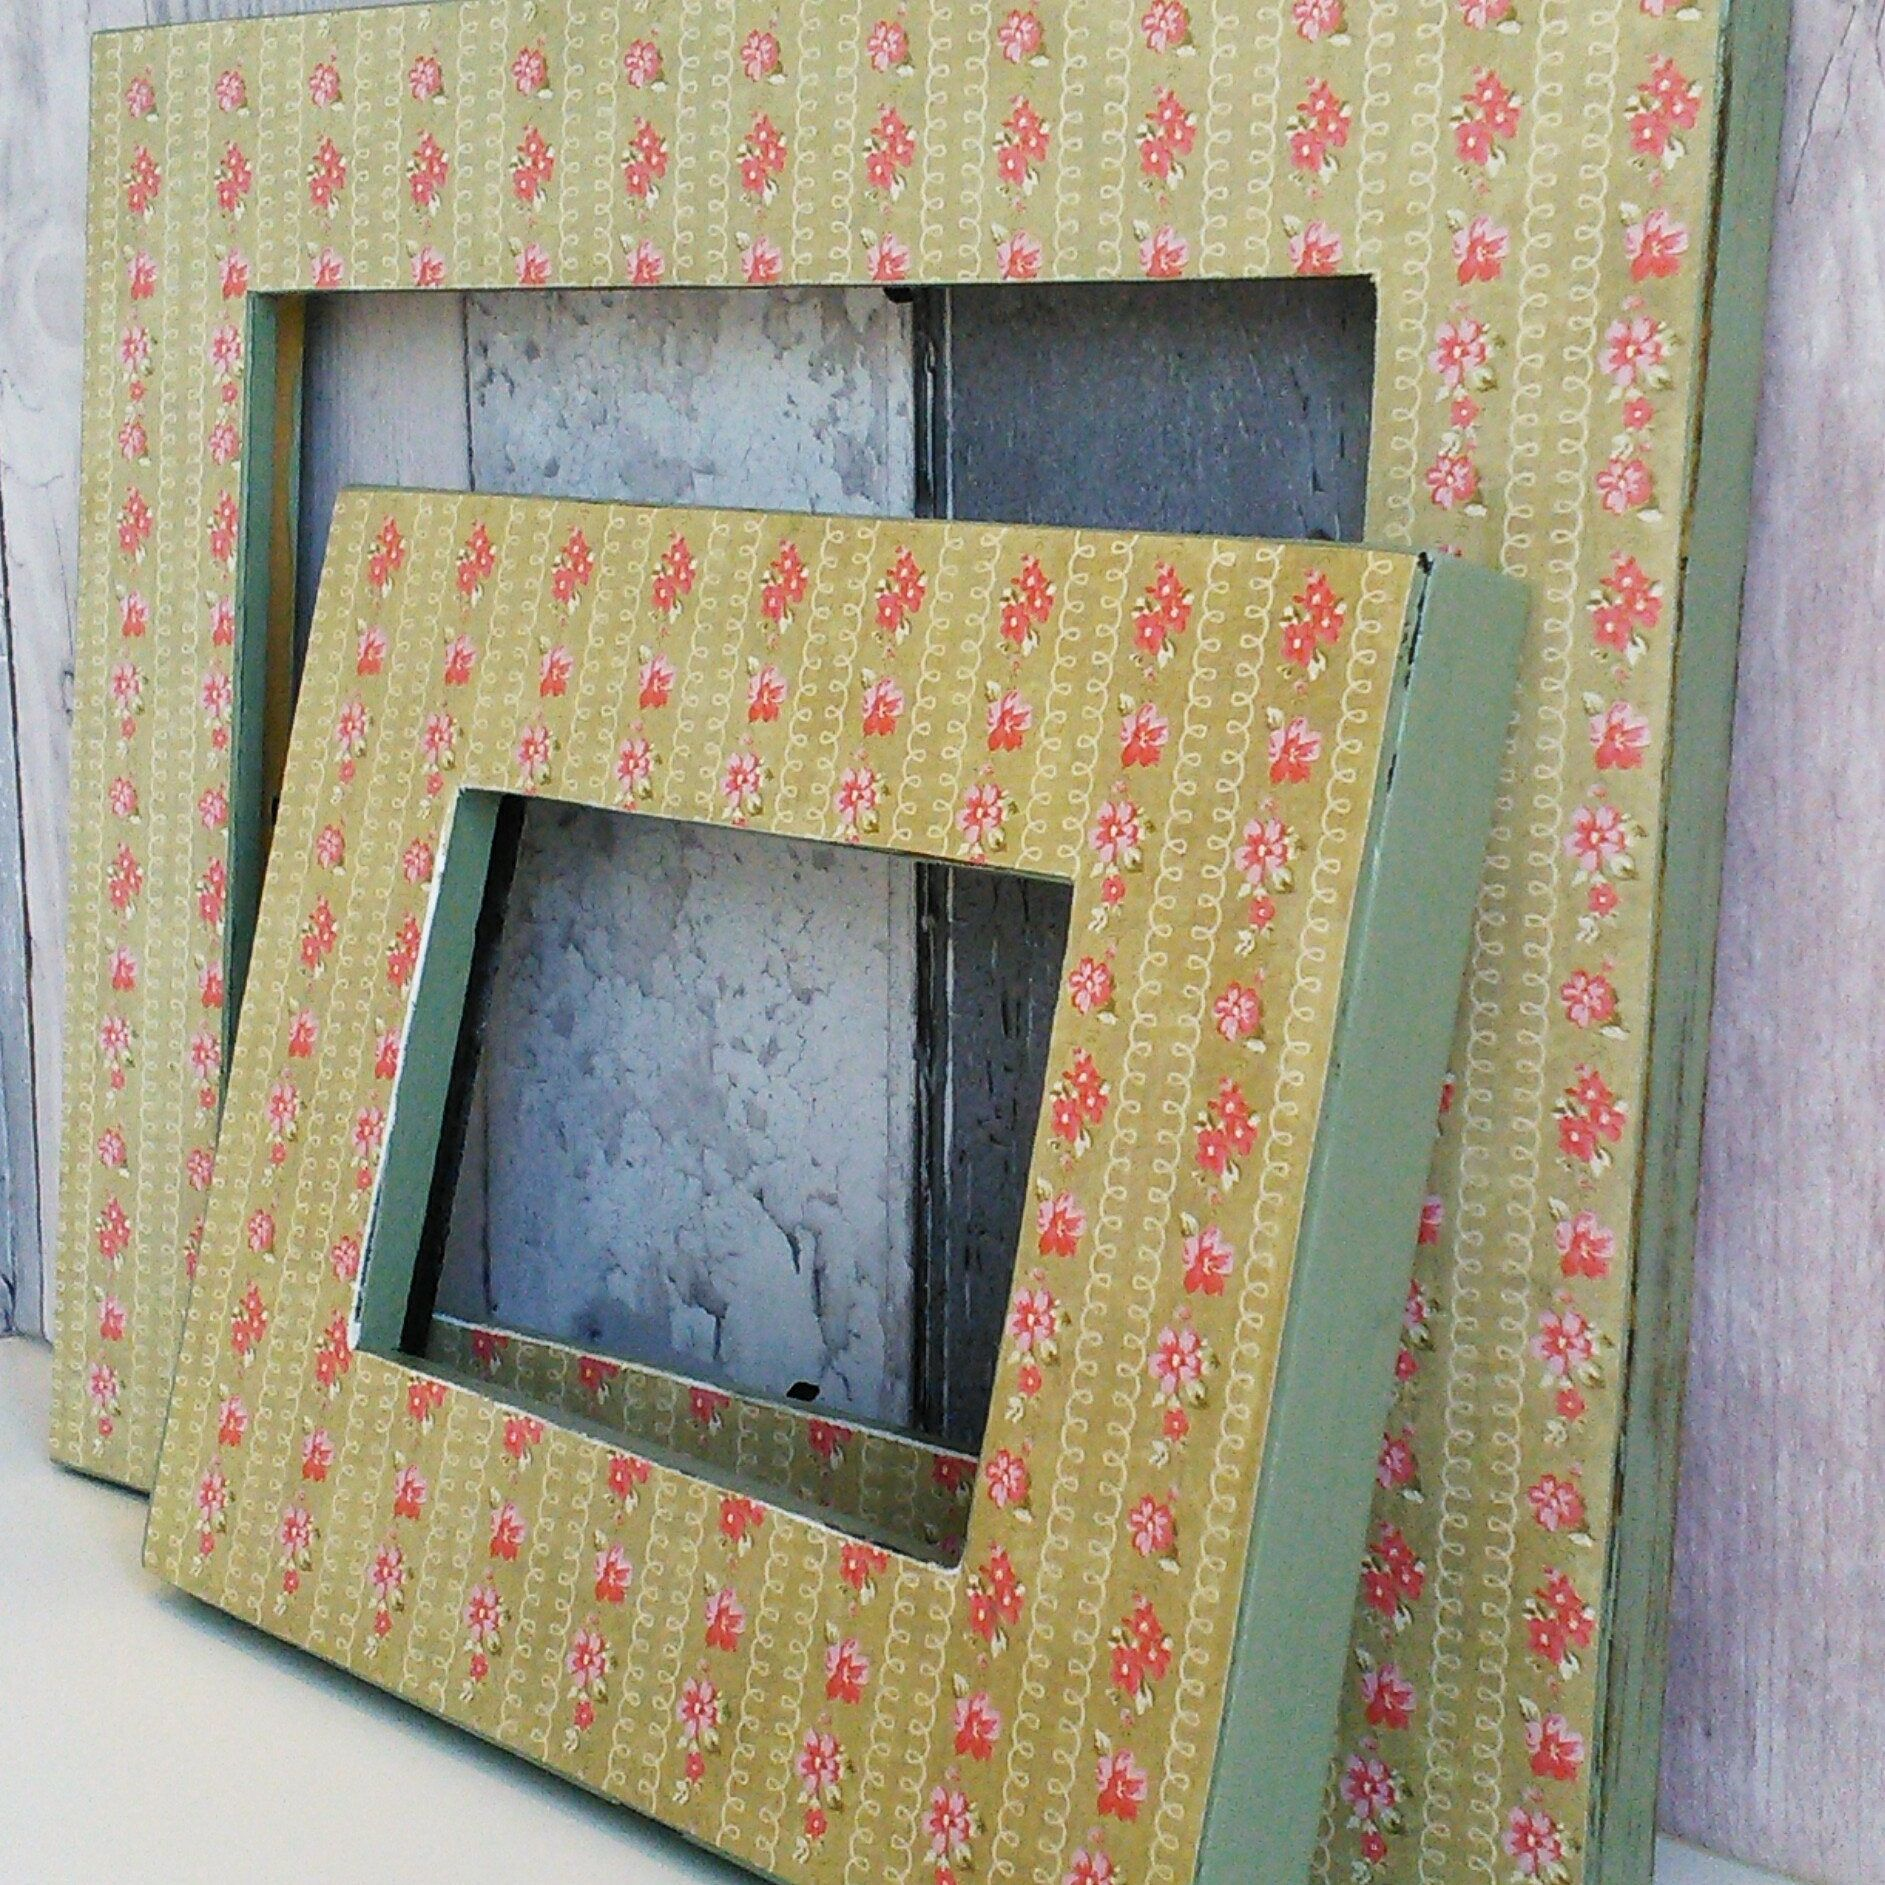 Decoupaged Frame, Open Frames, Empty Frames, Gallery Wall Frames, Floral